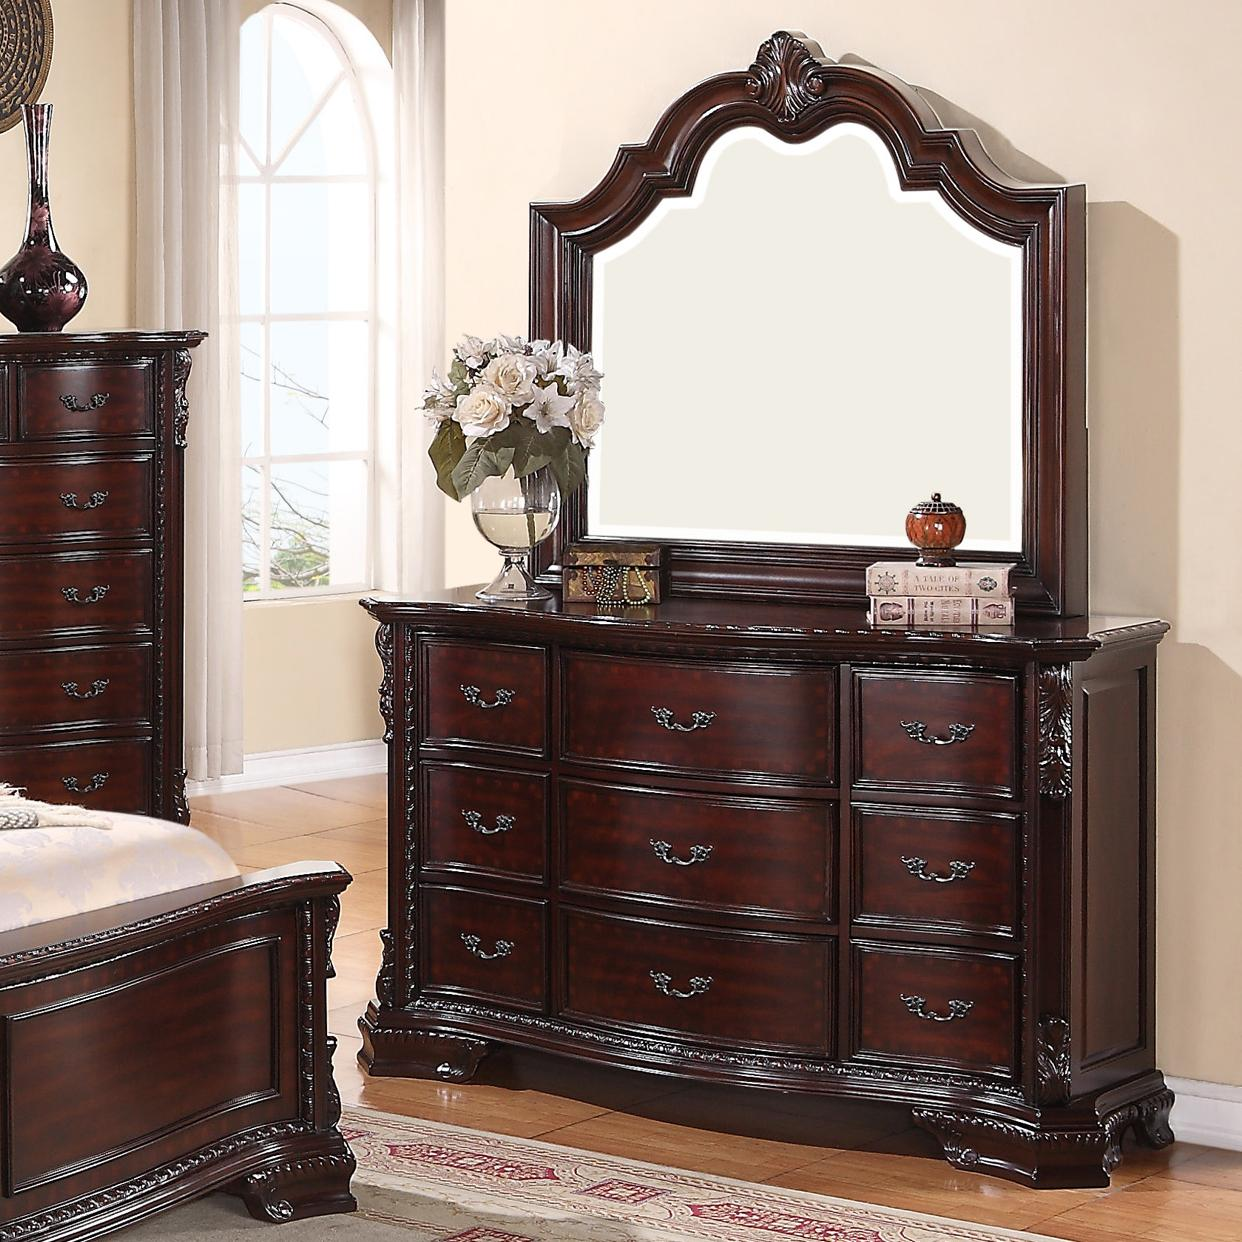 Sheffield Dresser and Mirror Set by Crown Mark at Northeast Factory Direct